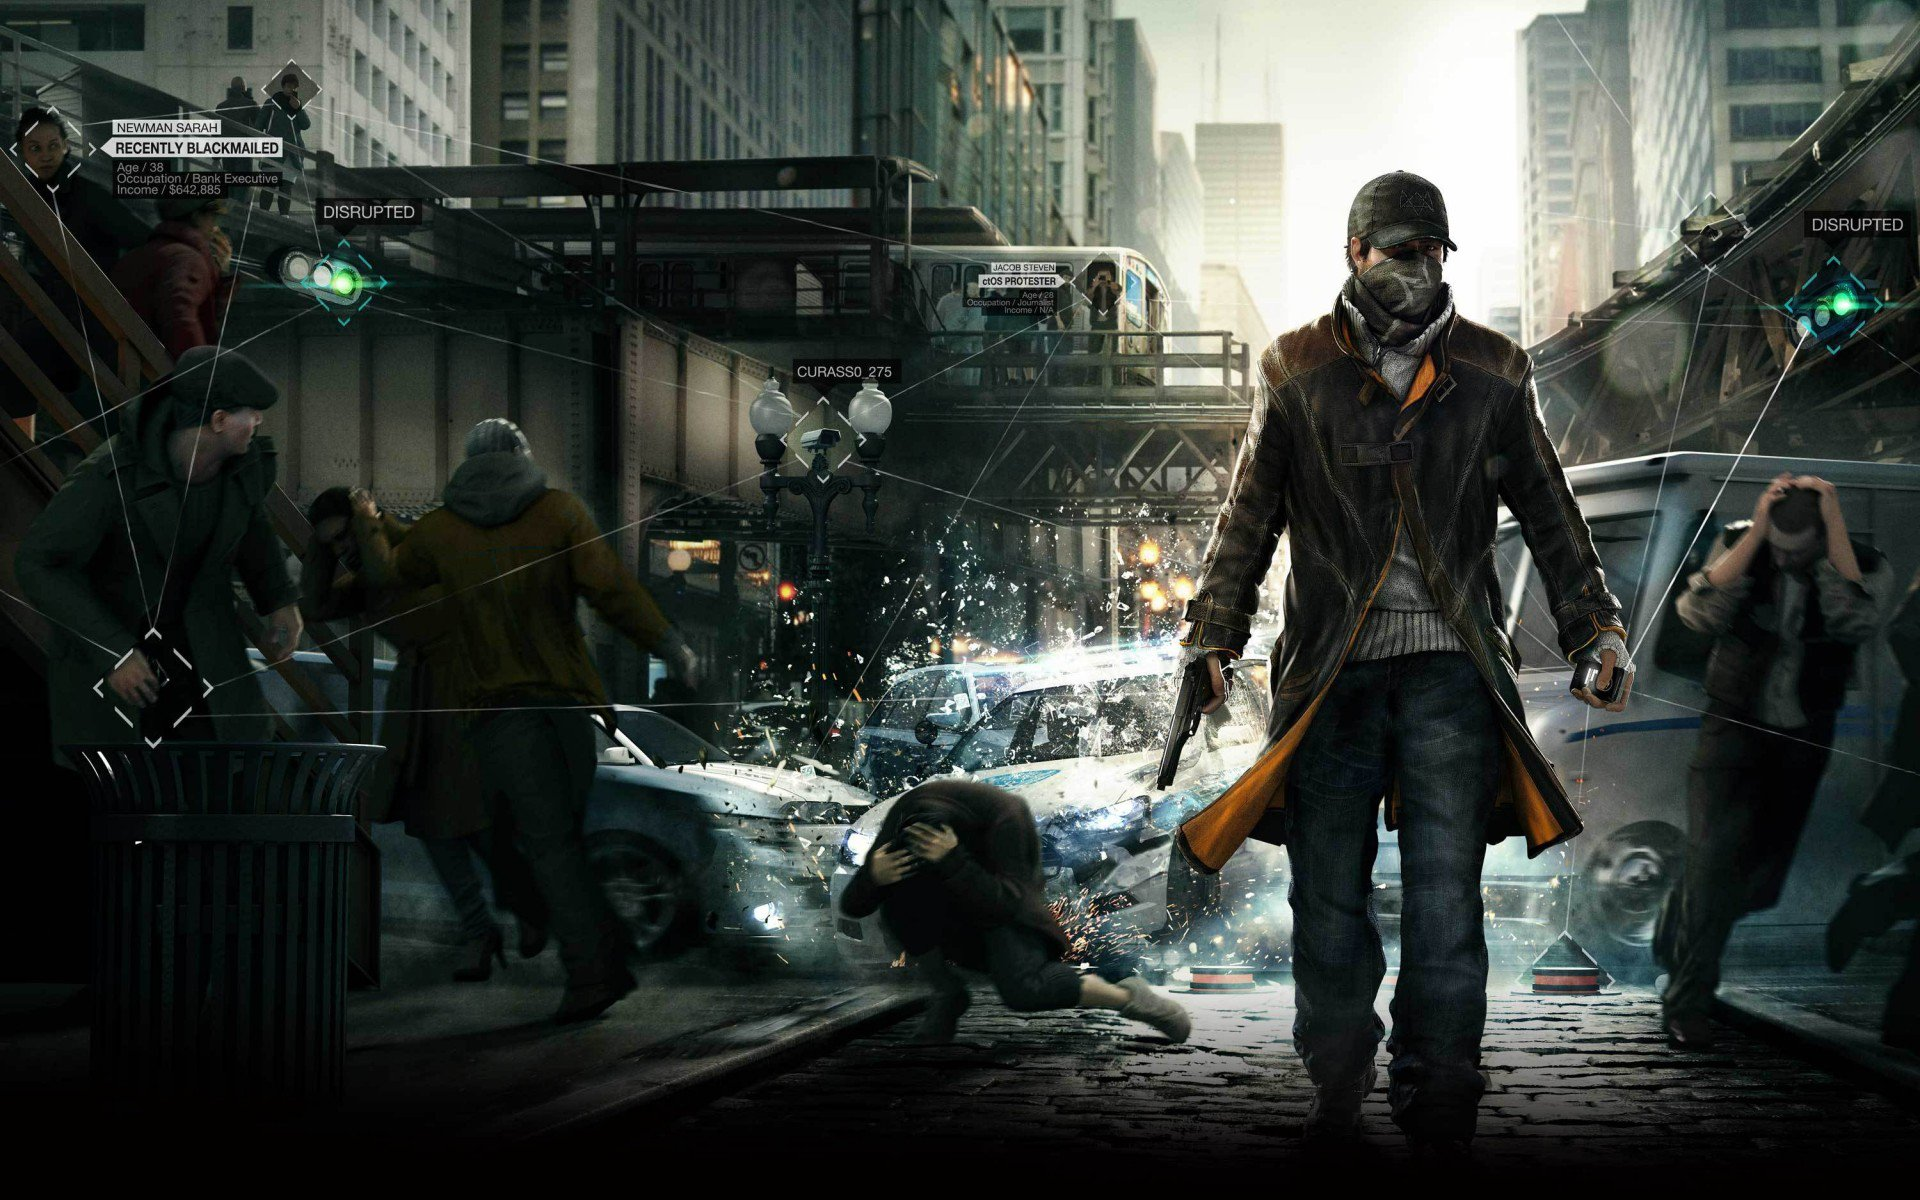 Chicago, пистолет, Сторожевые псы, watch dogs, Ubisoft Montreal, Aiden Pearce